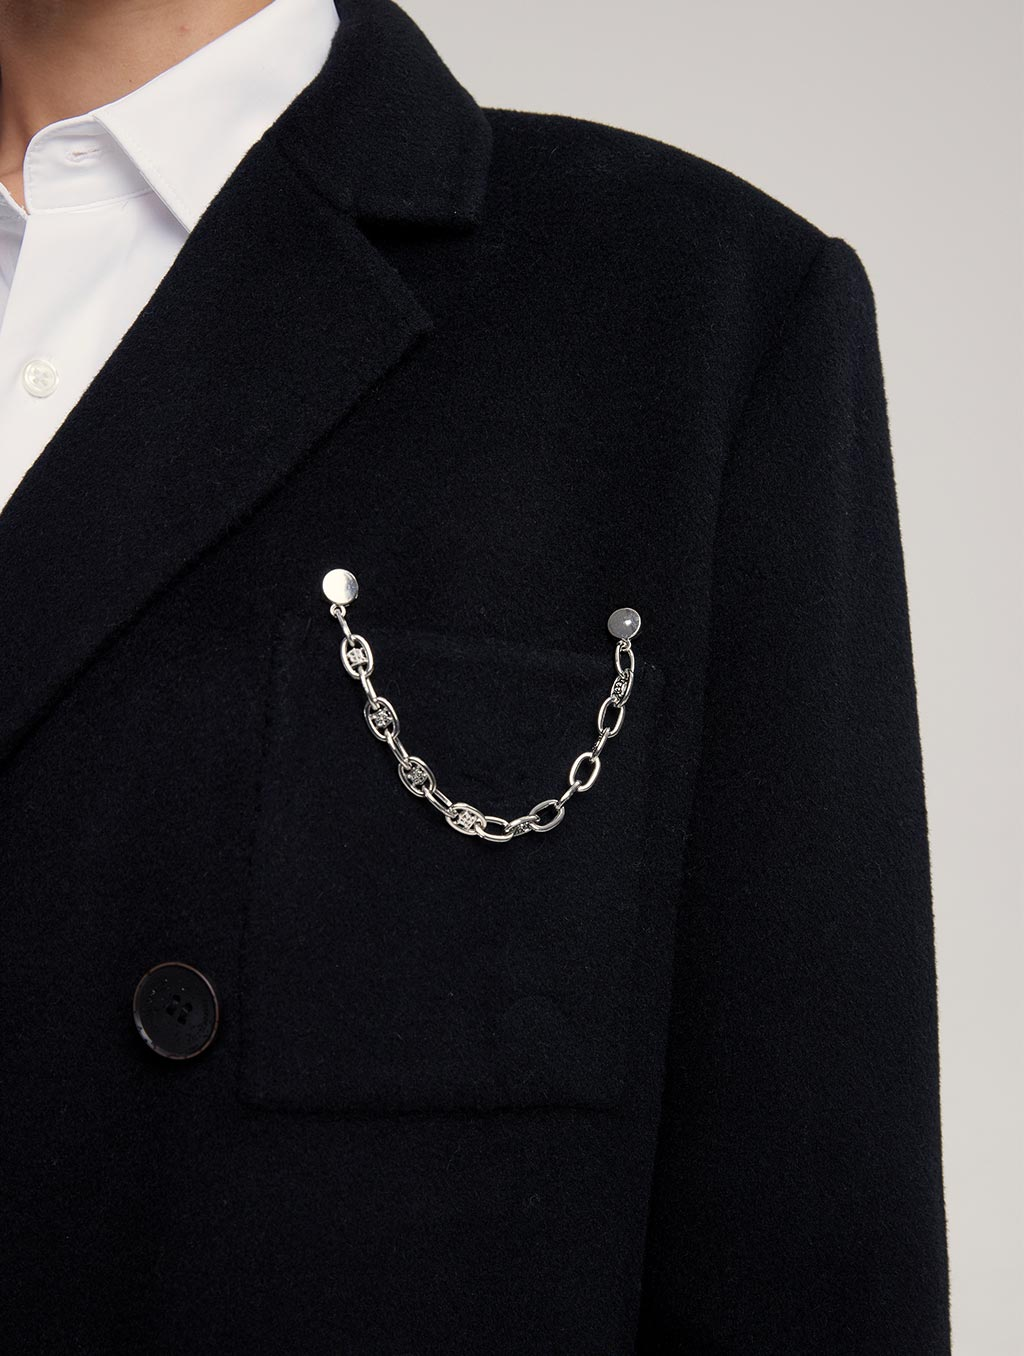 Waisted 100% Camel Hair Coat With Badge-detail1-black